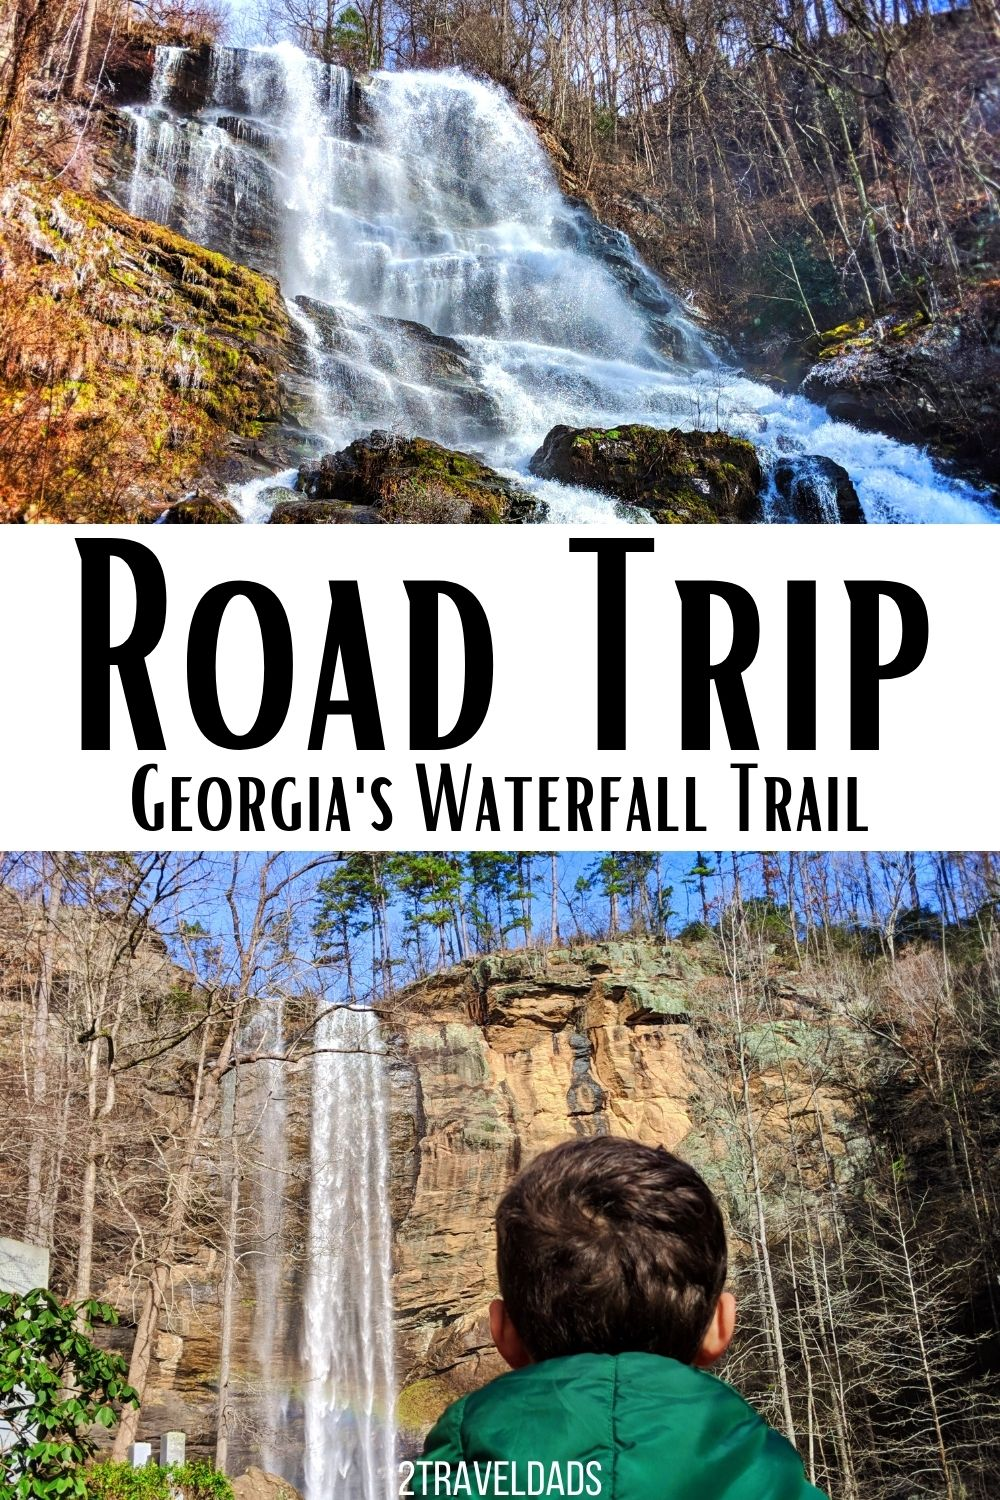 Georgia is gorge-ous... Northern Georgia is full of waterfalls pouring down the slopes of the Appalachian Mountains. This road trip plan visits some of the most beautiful waterfalls in Georgia, including charming mountain towns and state parks. Hiking suggestions, farm stops and more.